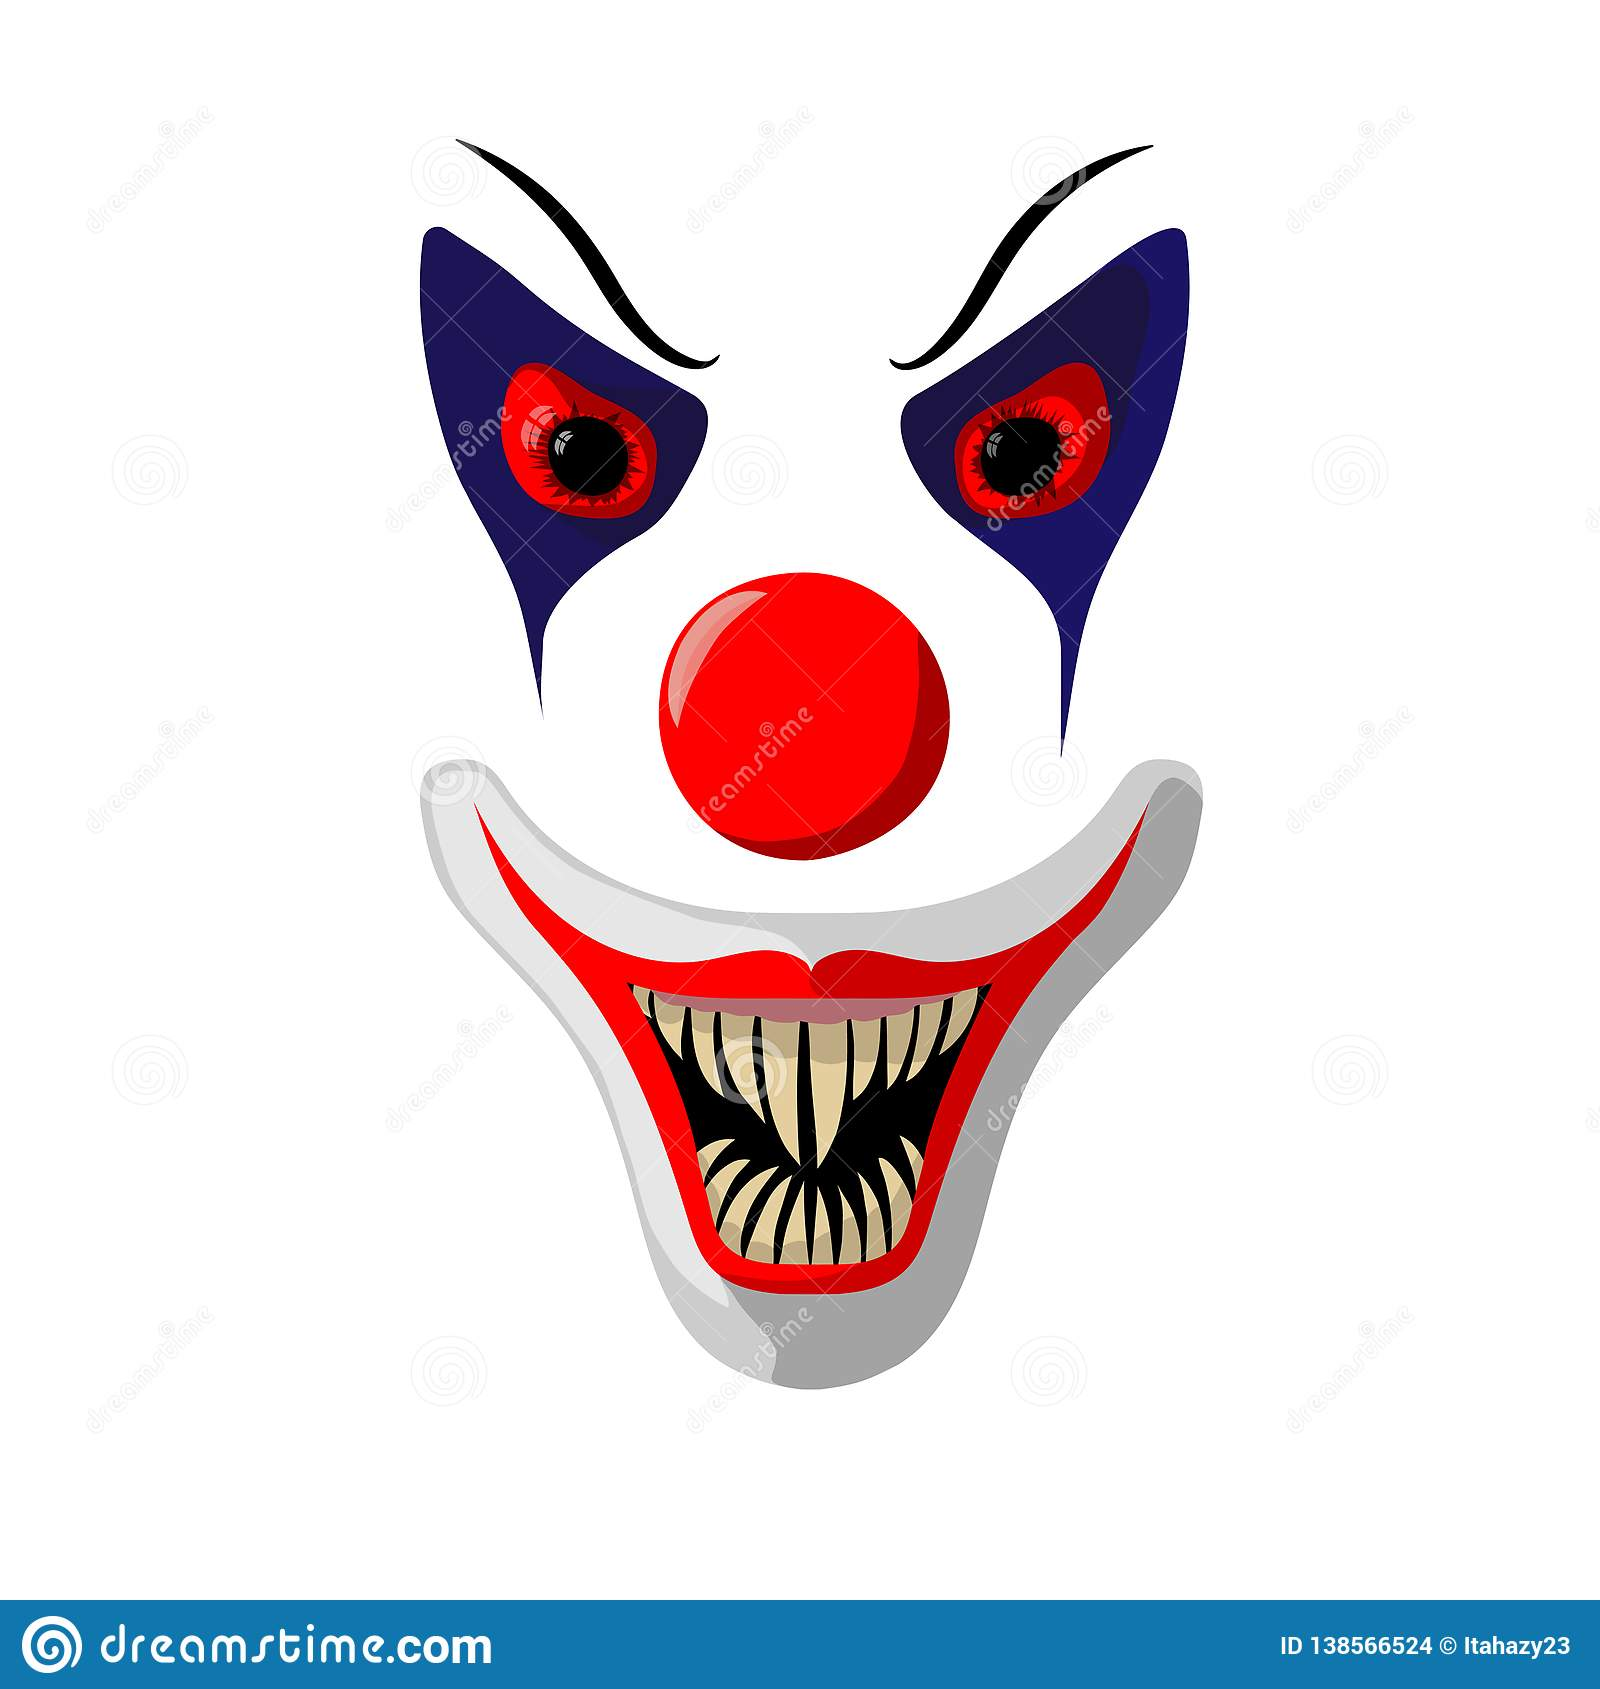 Scary Clown Face With Bloody Eyes And Big Fangs Stock Vector Illustration Of Killer Decoration 138566524